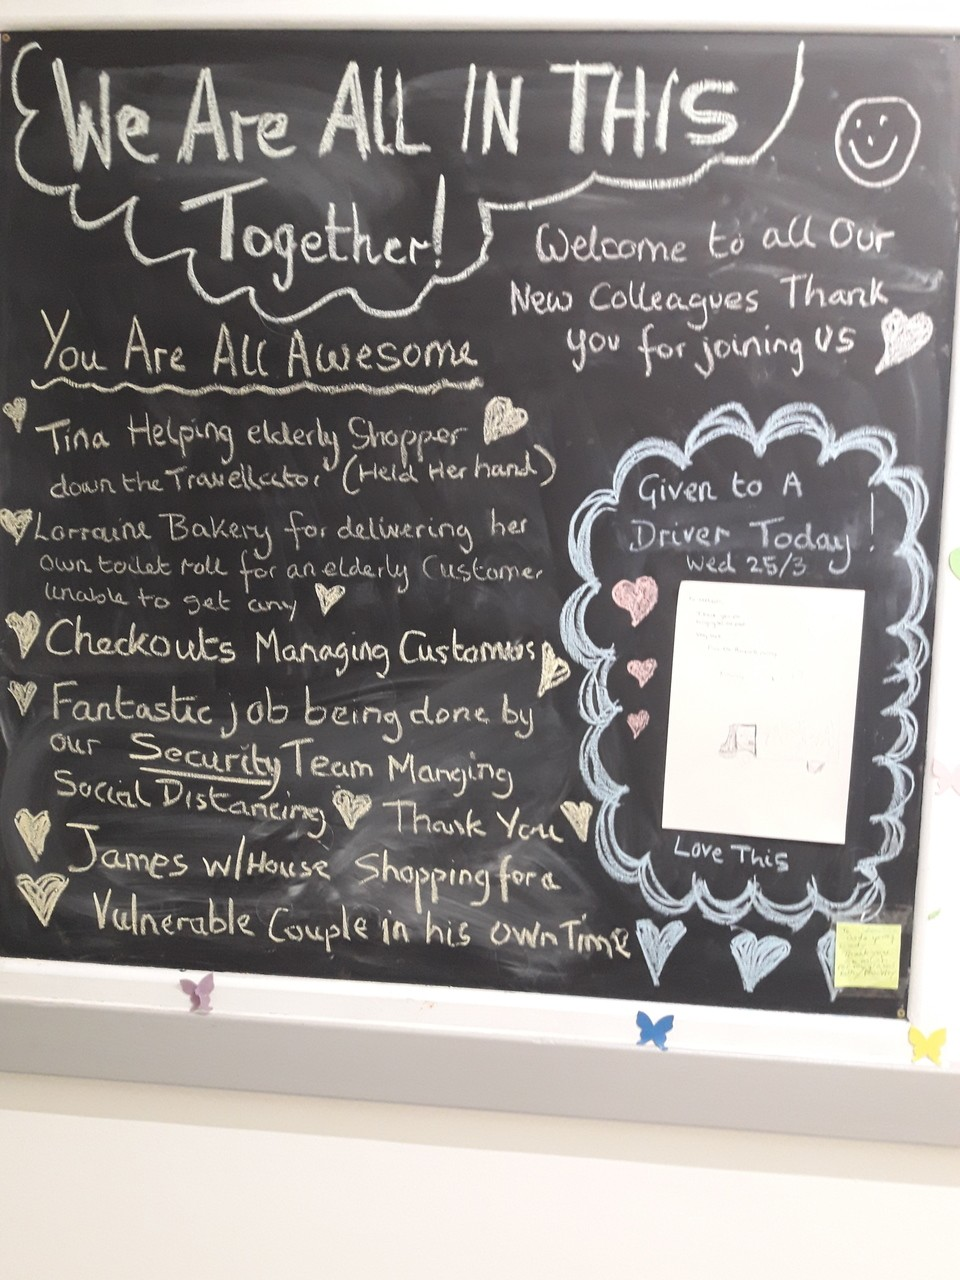 Bournemouth's positive board | Asda Bournemouth